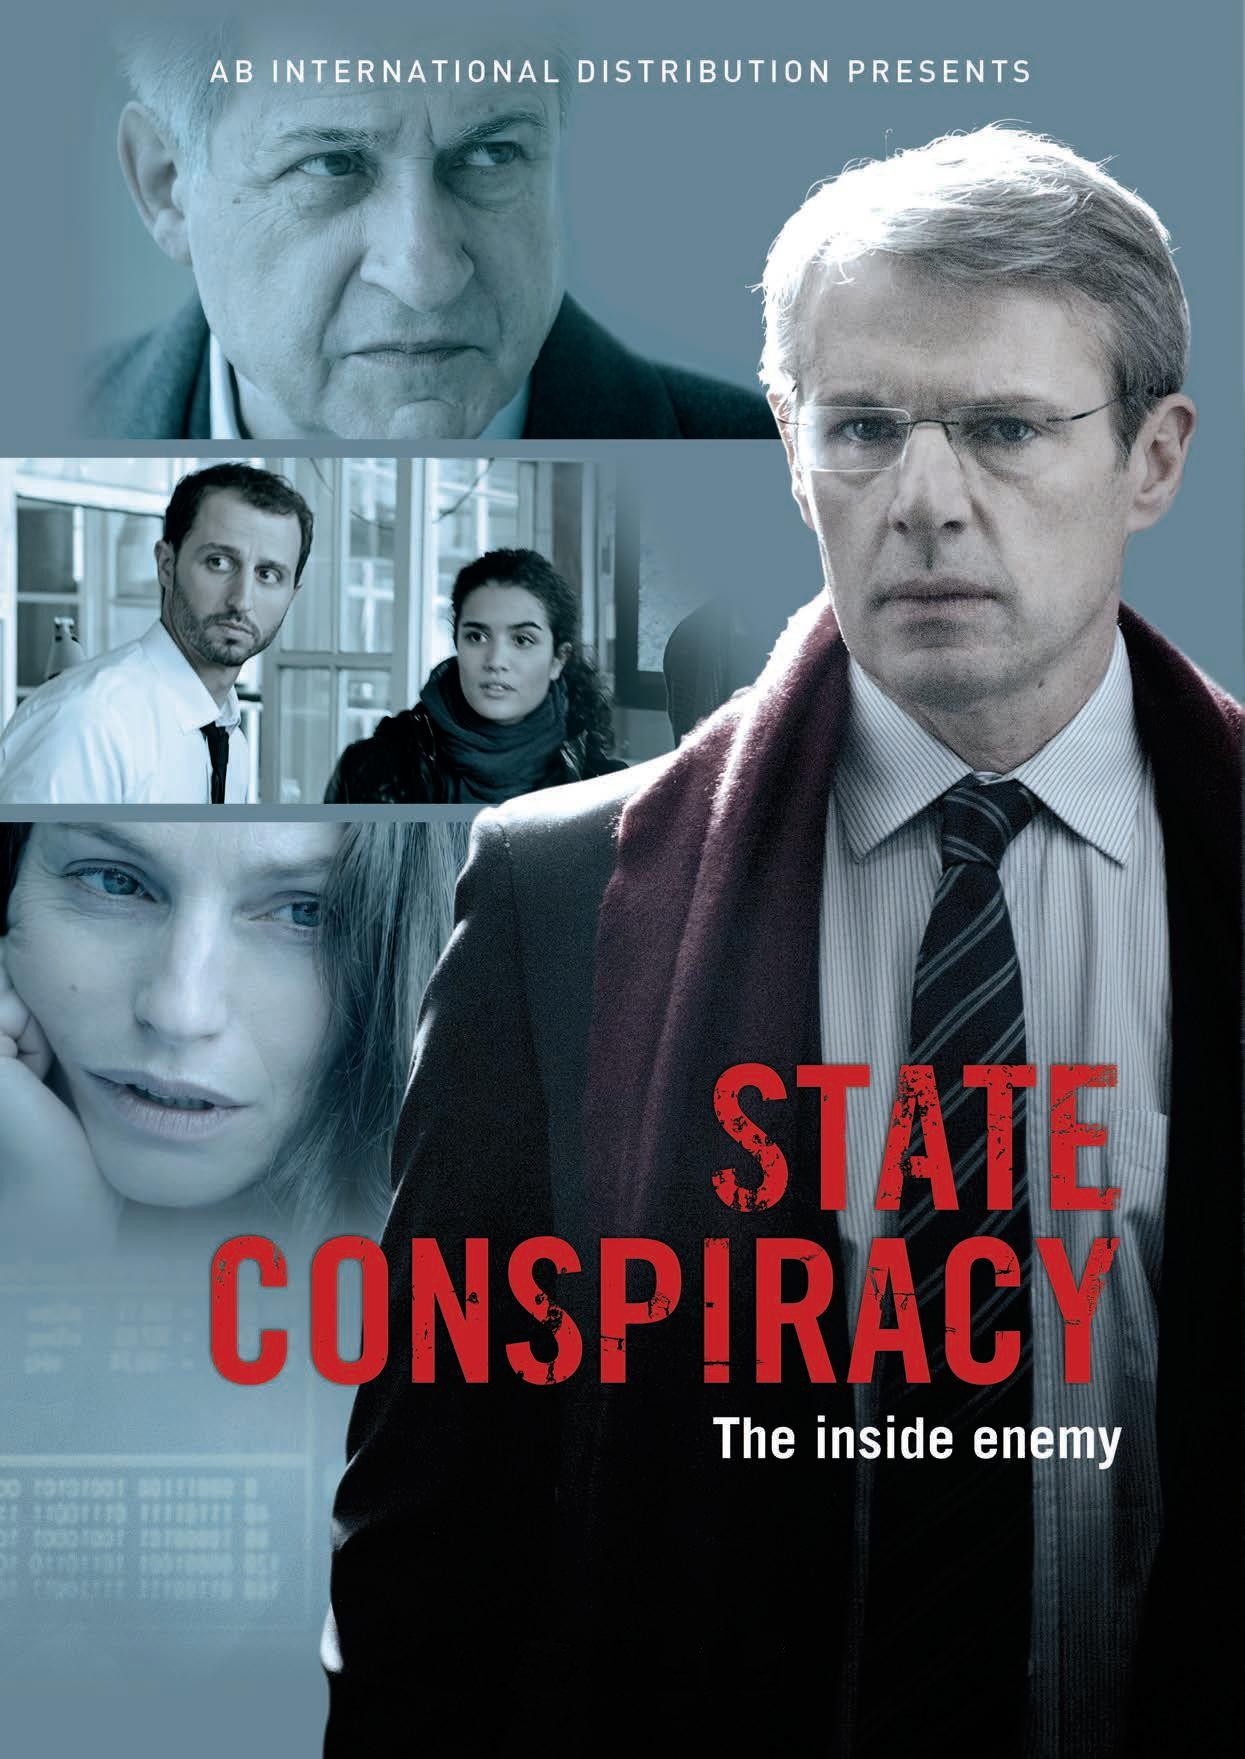 [MULTi] State Conspiracy (2013)  [FRENCH] [DVDRip]